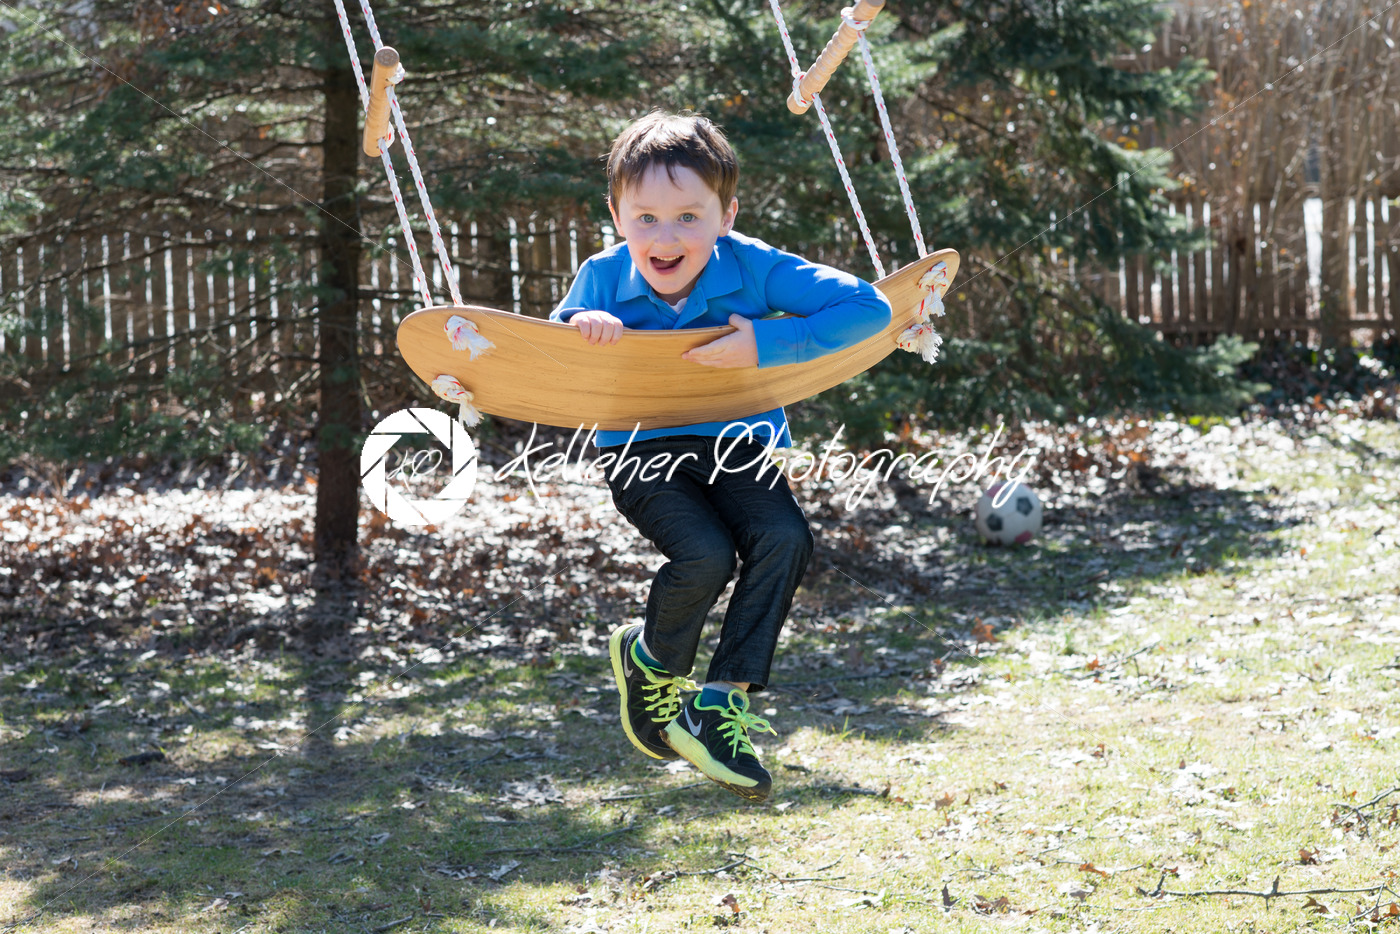 Young boy outside in backyard having fun on a swing - Kelleher Photography Store